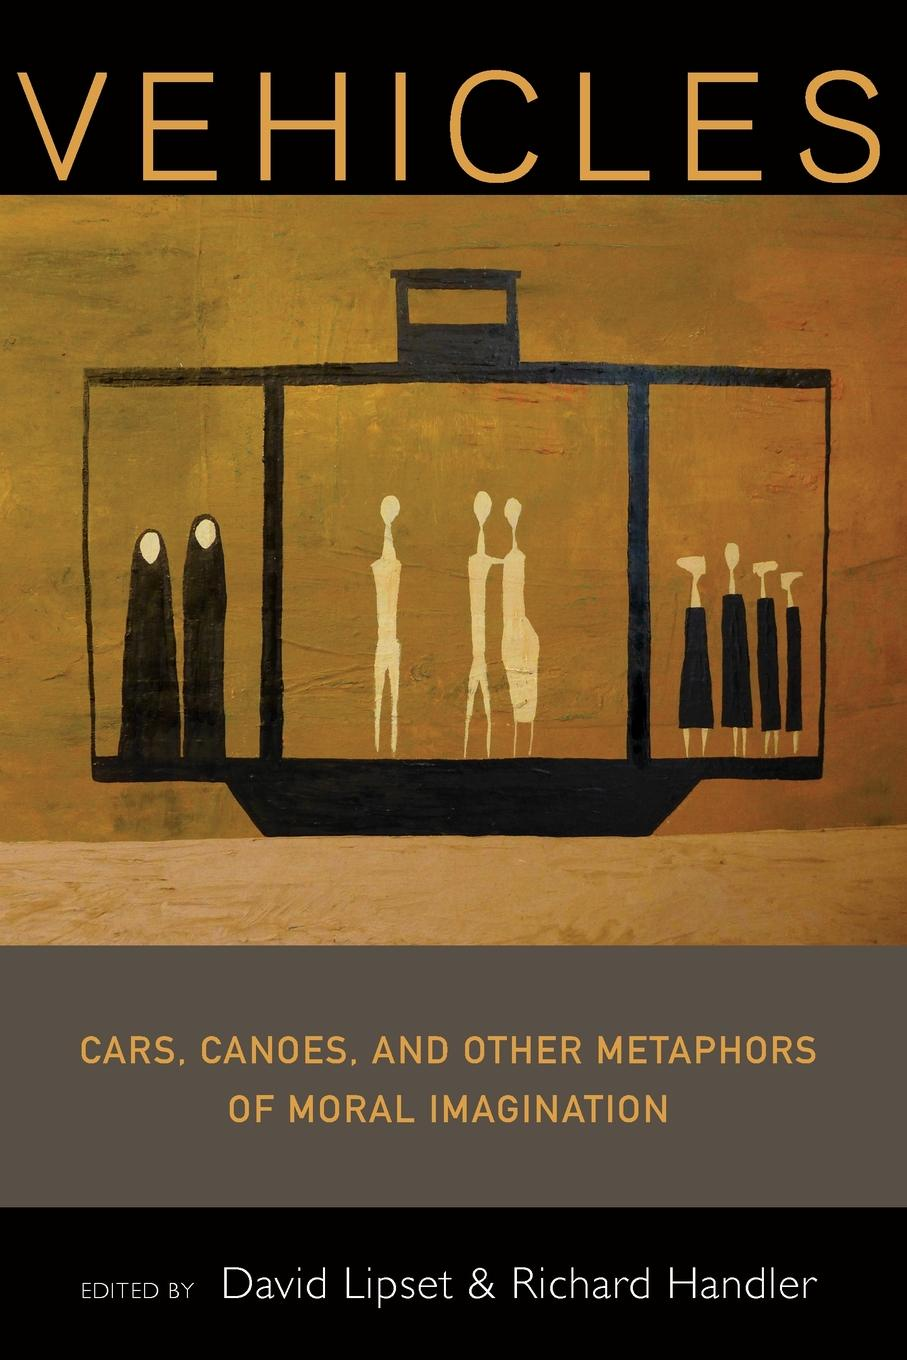 Vehicles. Cars, Canoes, and Other Metaphors of Moral Imagination